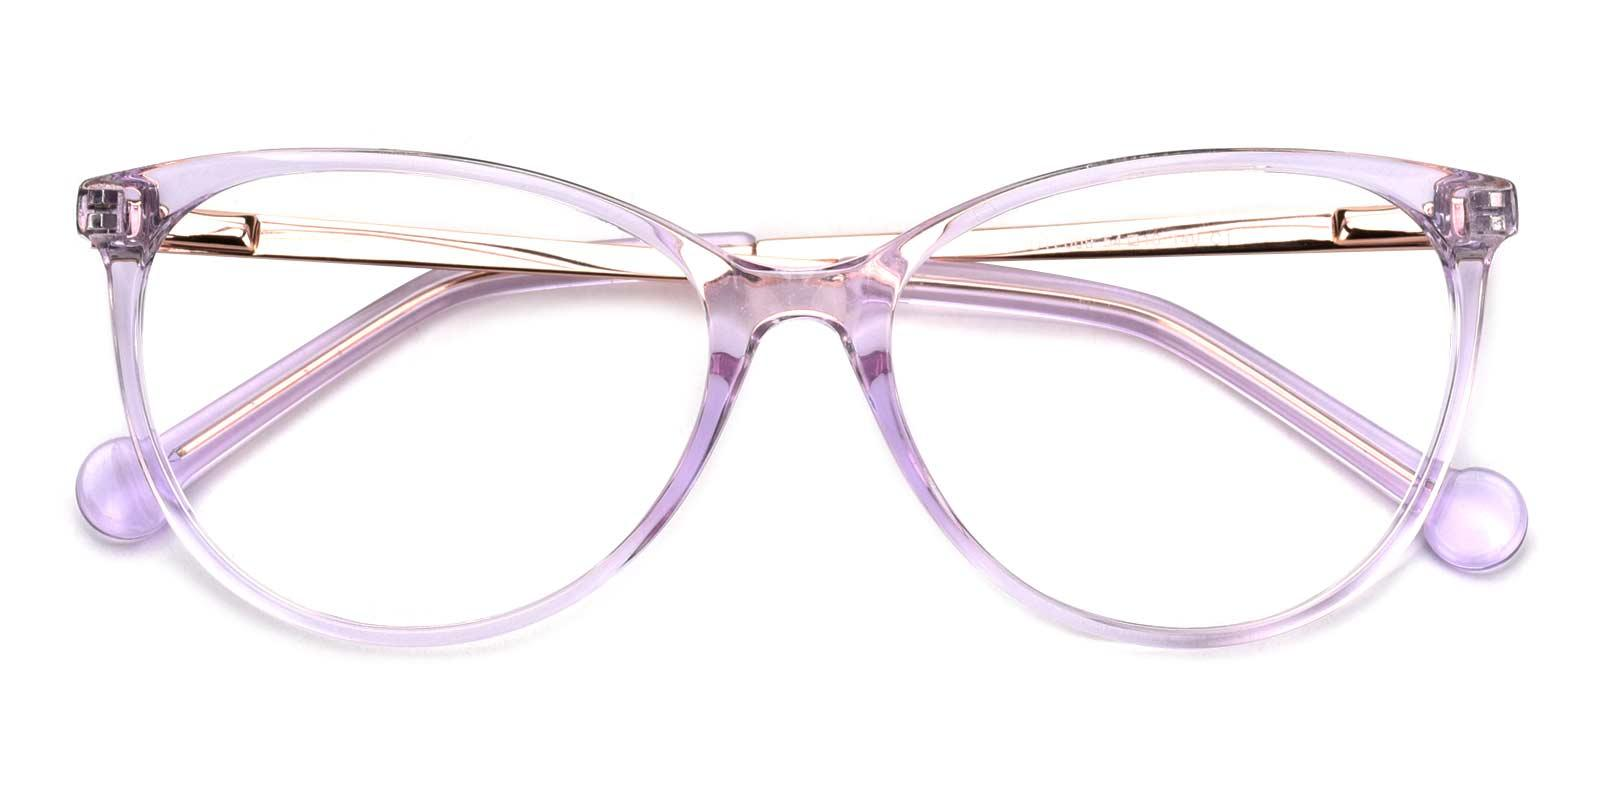 Wisteria-Purple-Cat-Acetate-Eyeglasses-detail